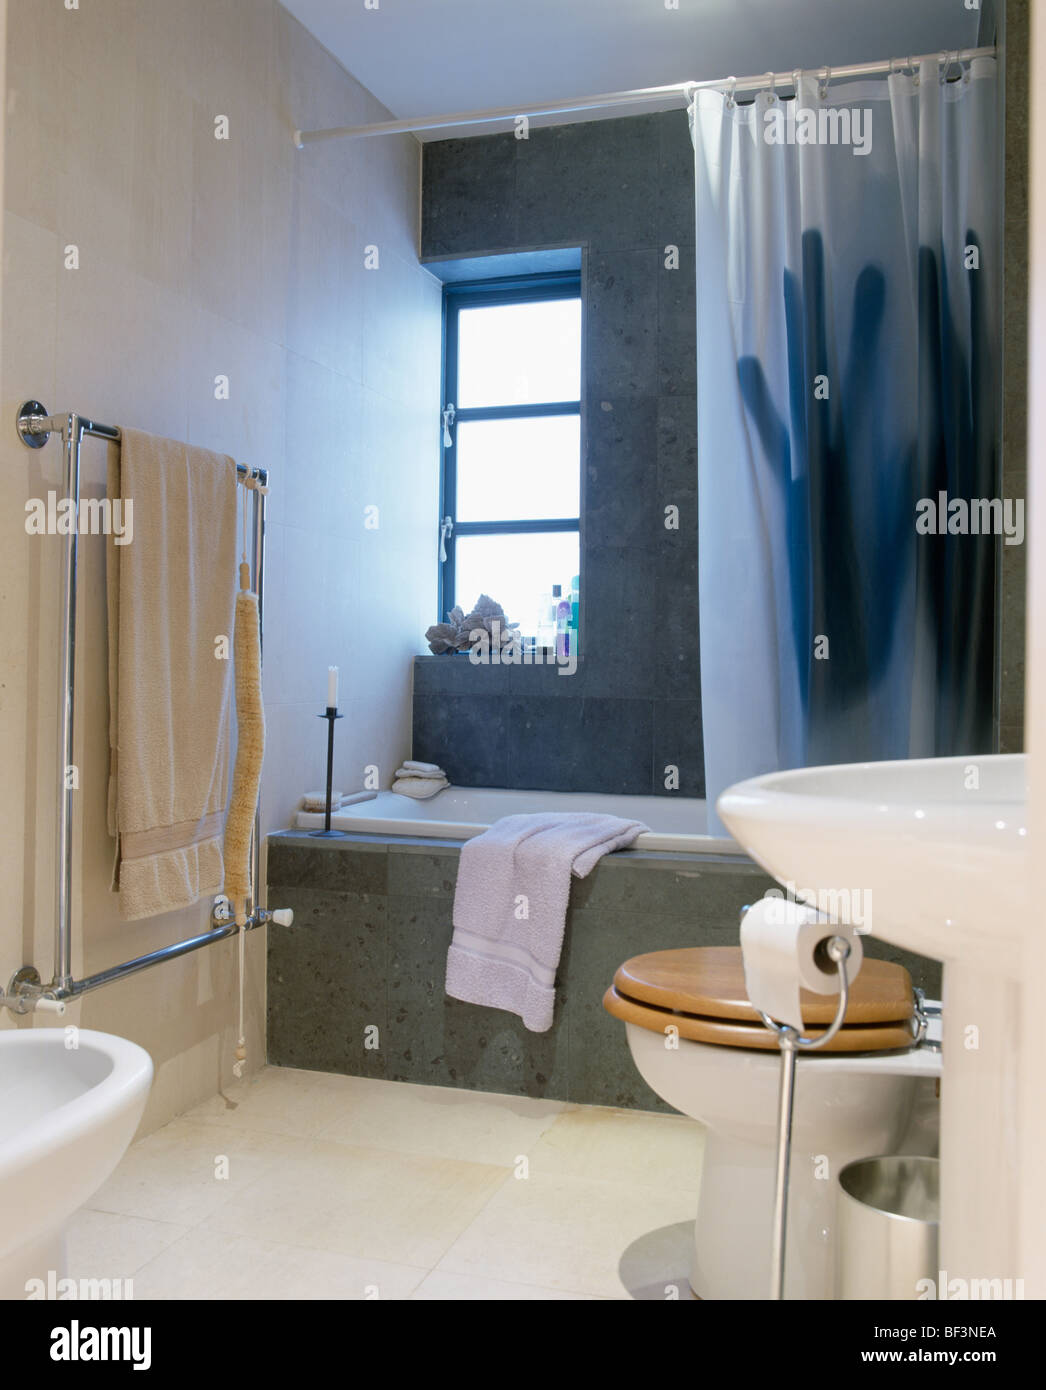 Granite Bath Surround In Modern Bathroom With Hands Printed On White Shower Curtain